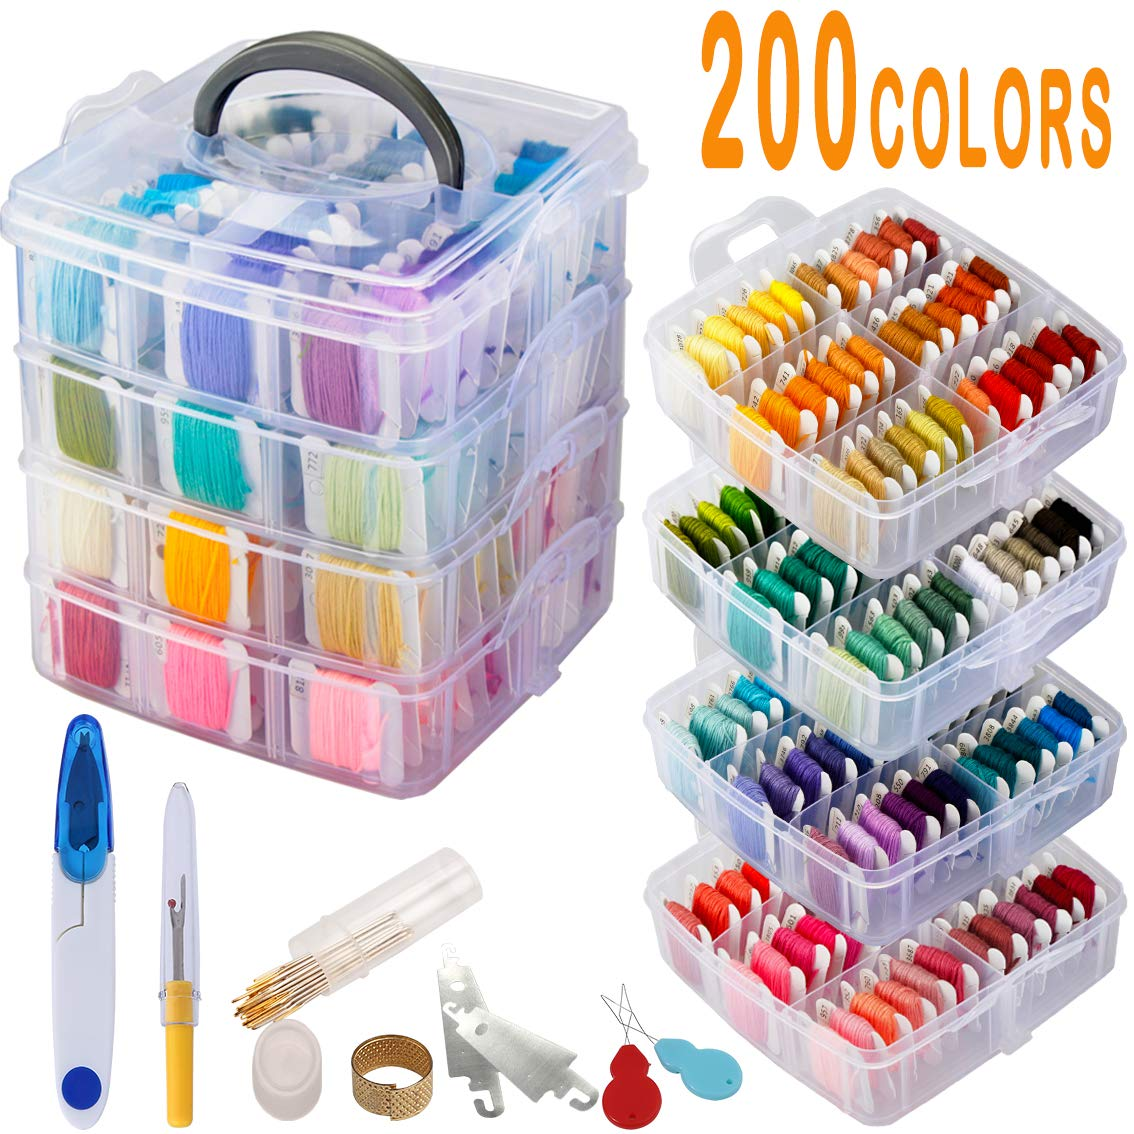 238 Pack Embroidery Thread Floss Set Including 200 Colors 8M/Pcs Cross Stitch Sewing Thread with Floss Bins and 38 Pcs Cross Stitch Tool,4-Tier Transparent Box for Storage by BYMORE